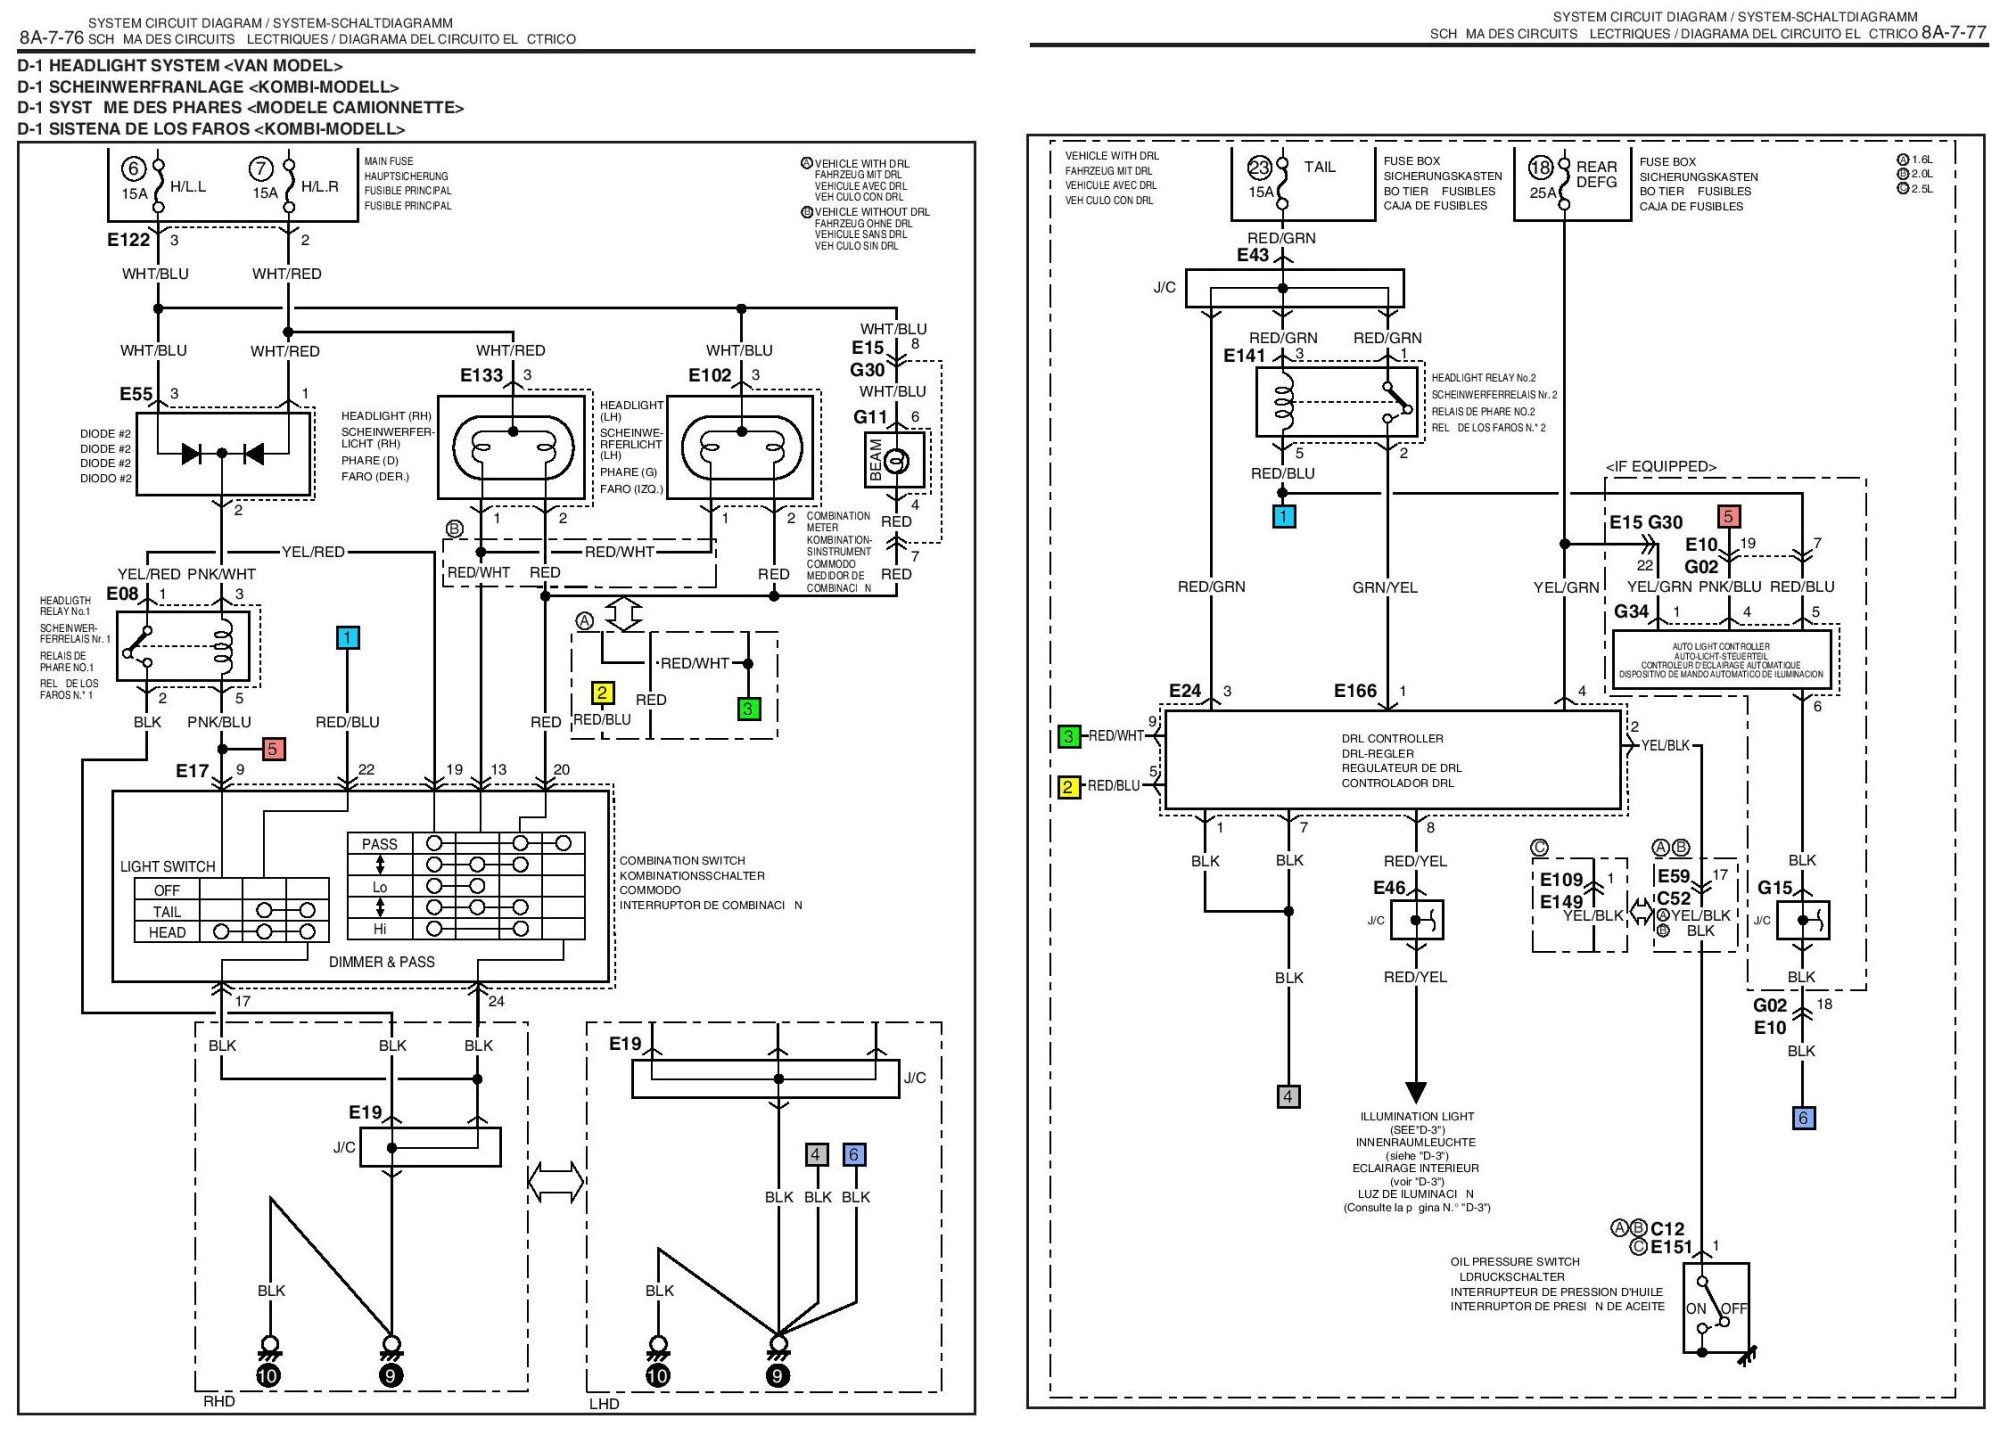 hight resolution of suzuki swift wiring diagram 2006 wiring diagram blogs 2008 toyota tundra fuse box diagram 2008 suzuki sx4 fuse box diagram stereo